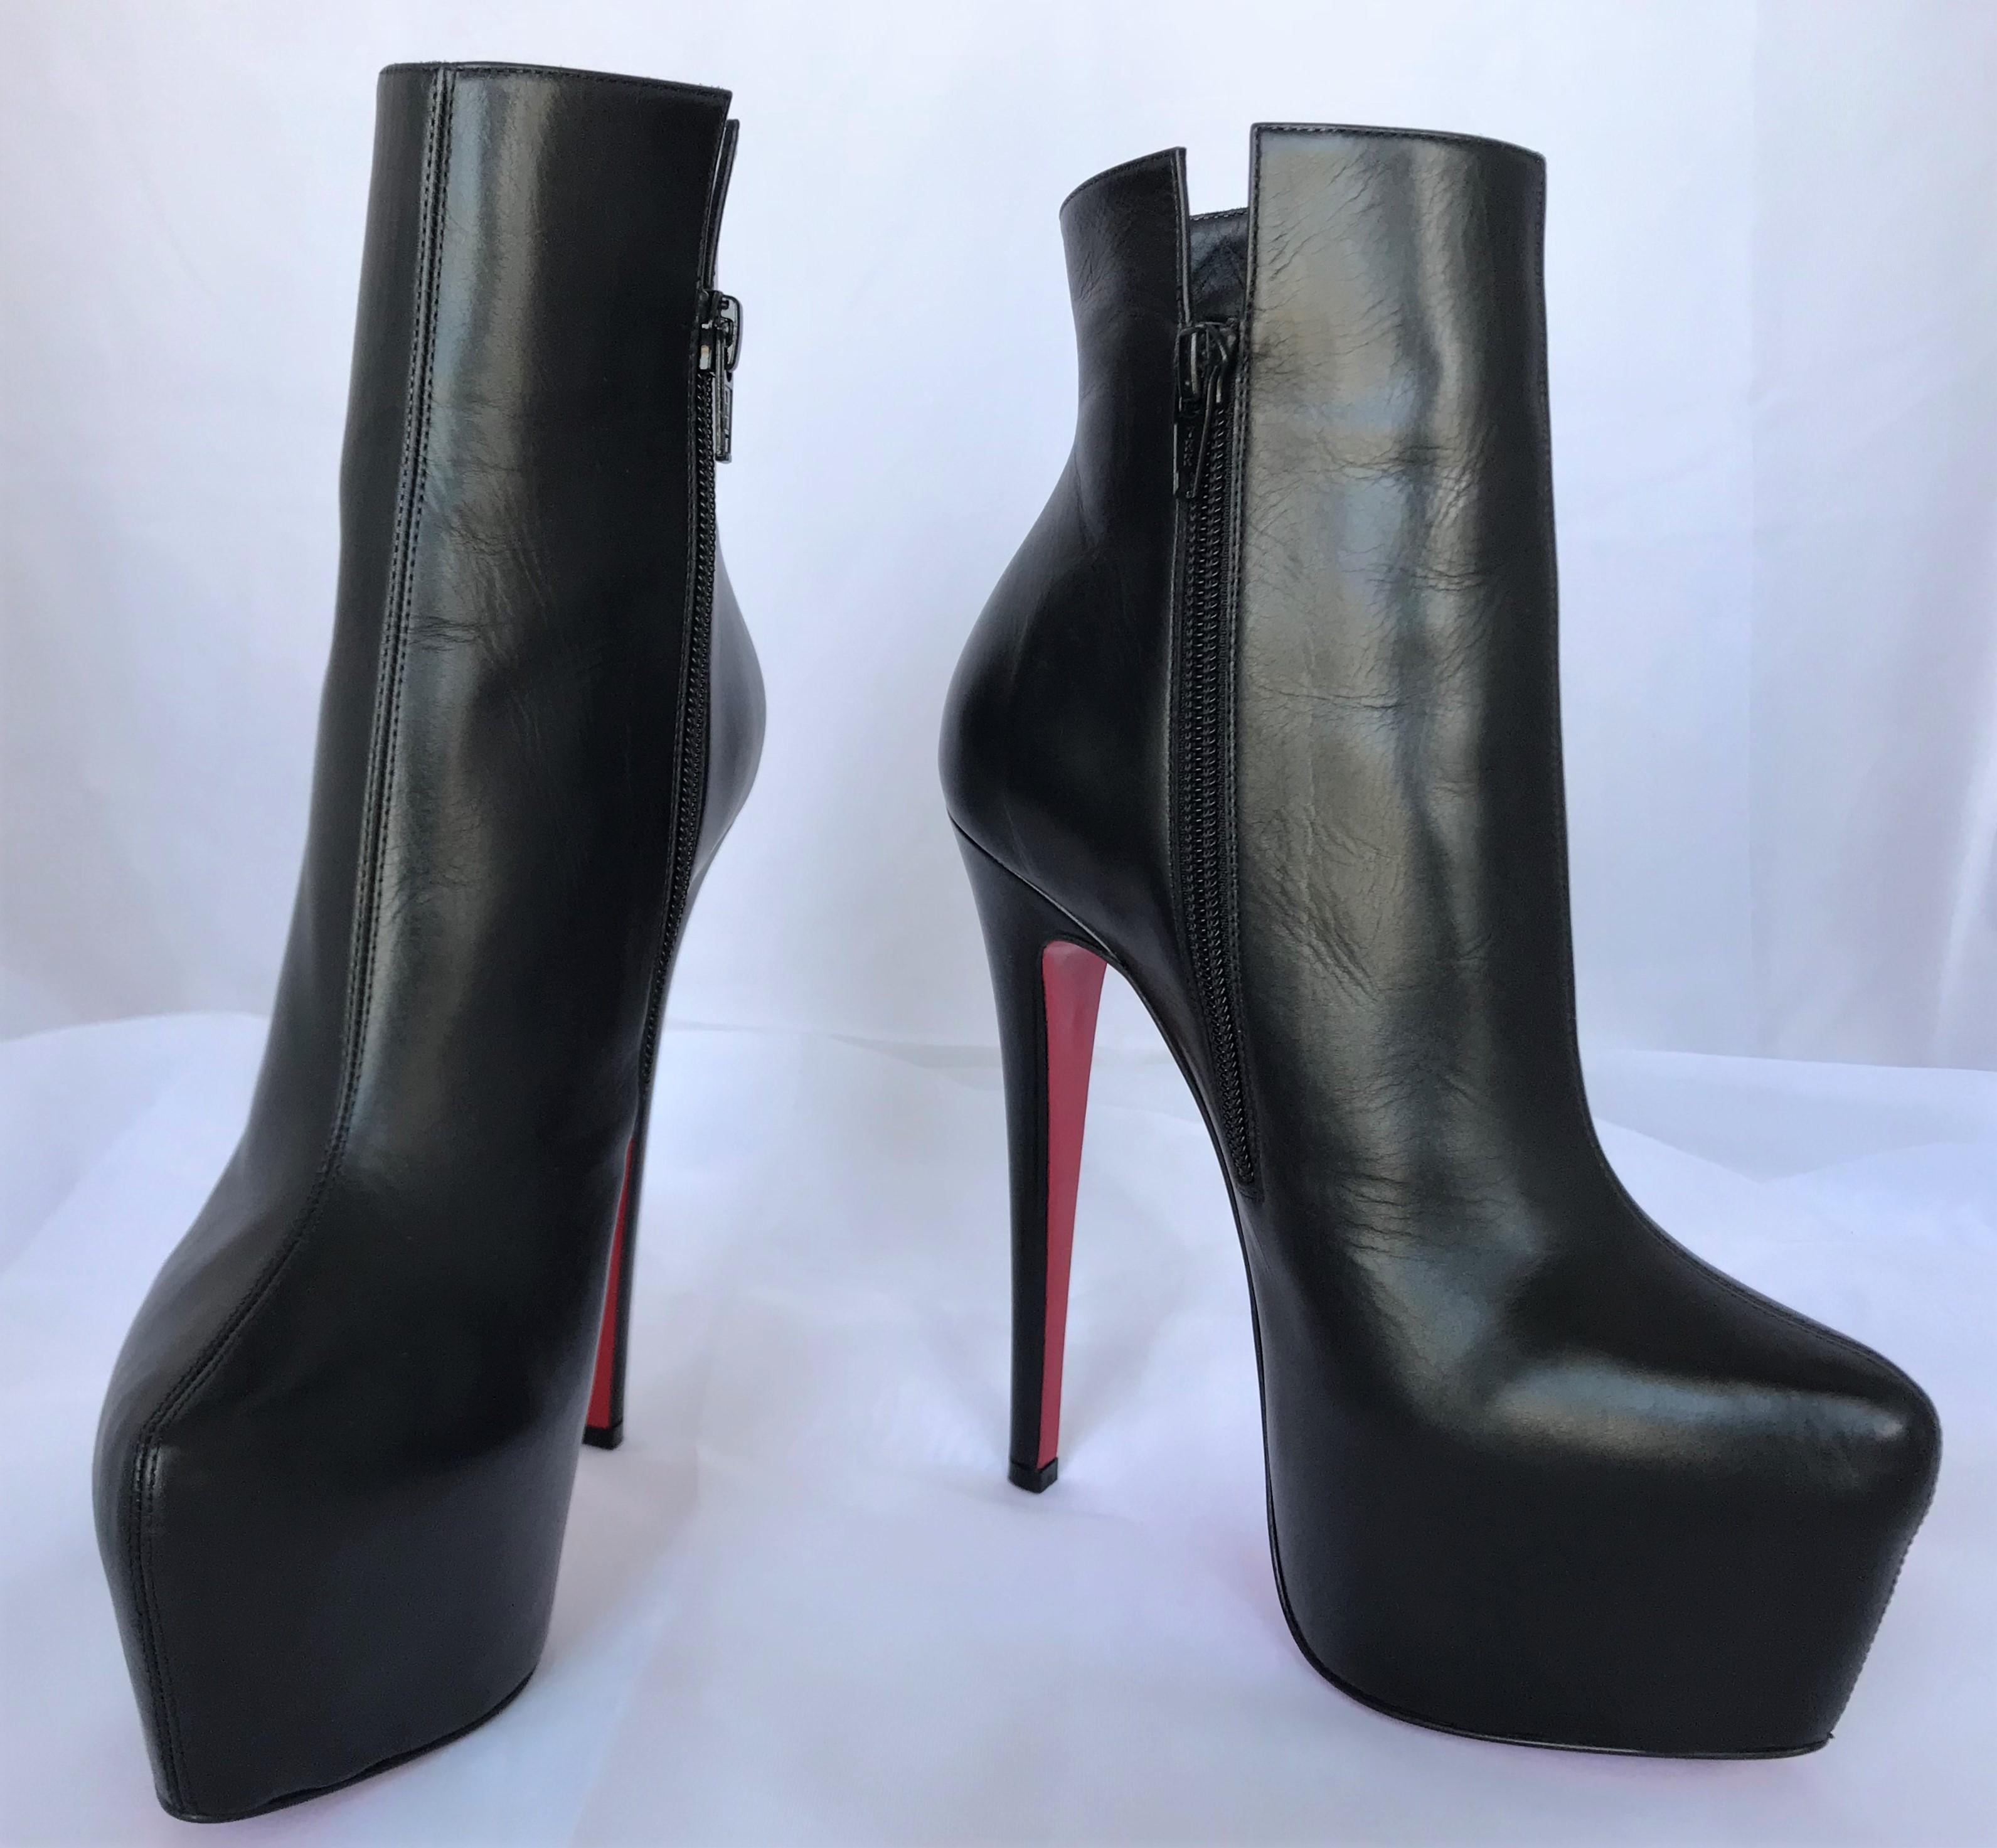 b0aeace0fa2f ... Christian Louboutin Black Ankle New 35.5 It It It Daffodile Leather  Platform High Heel Lady Red ...